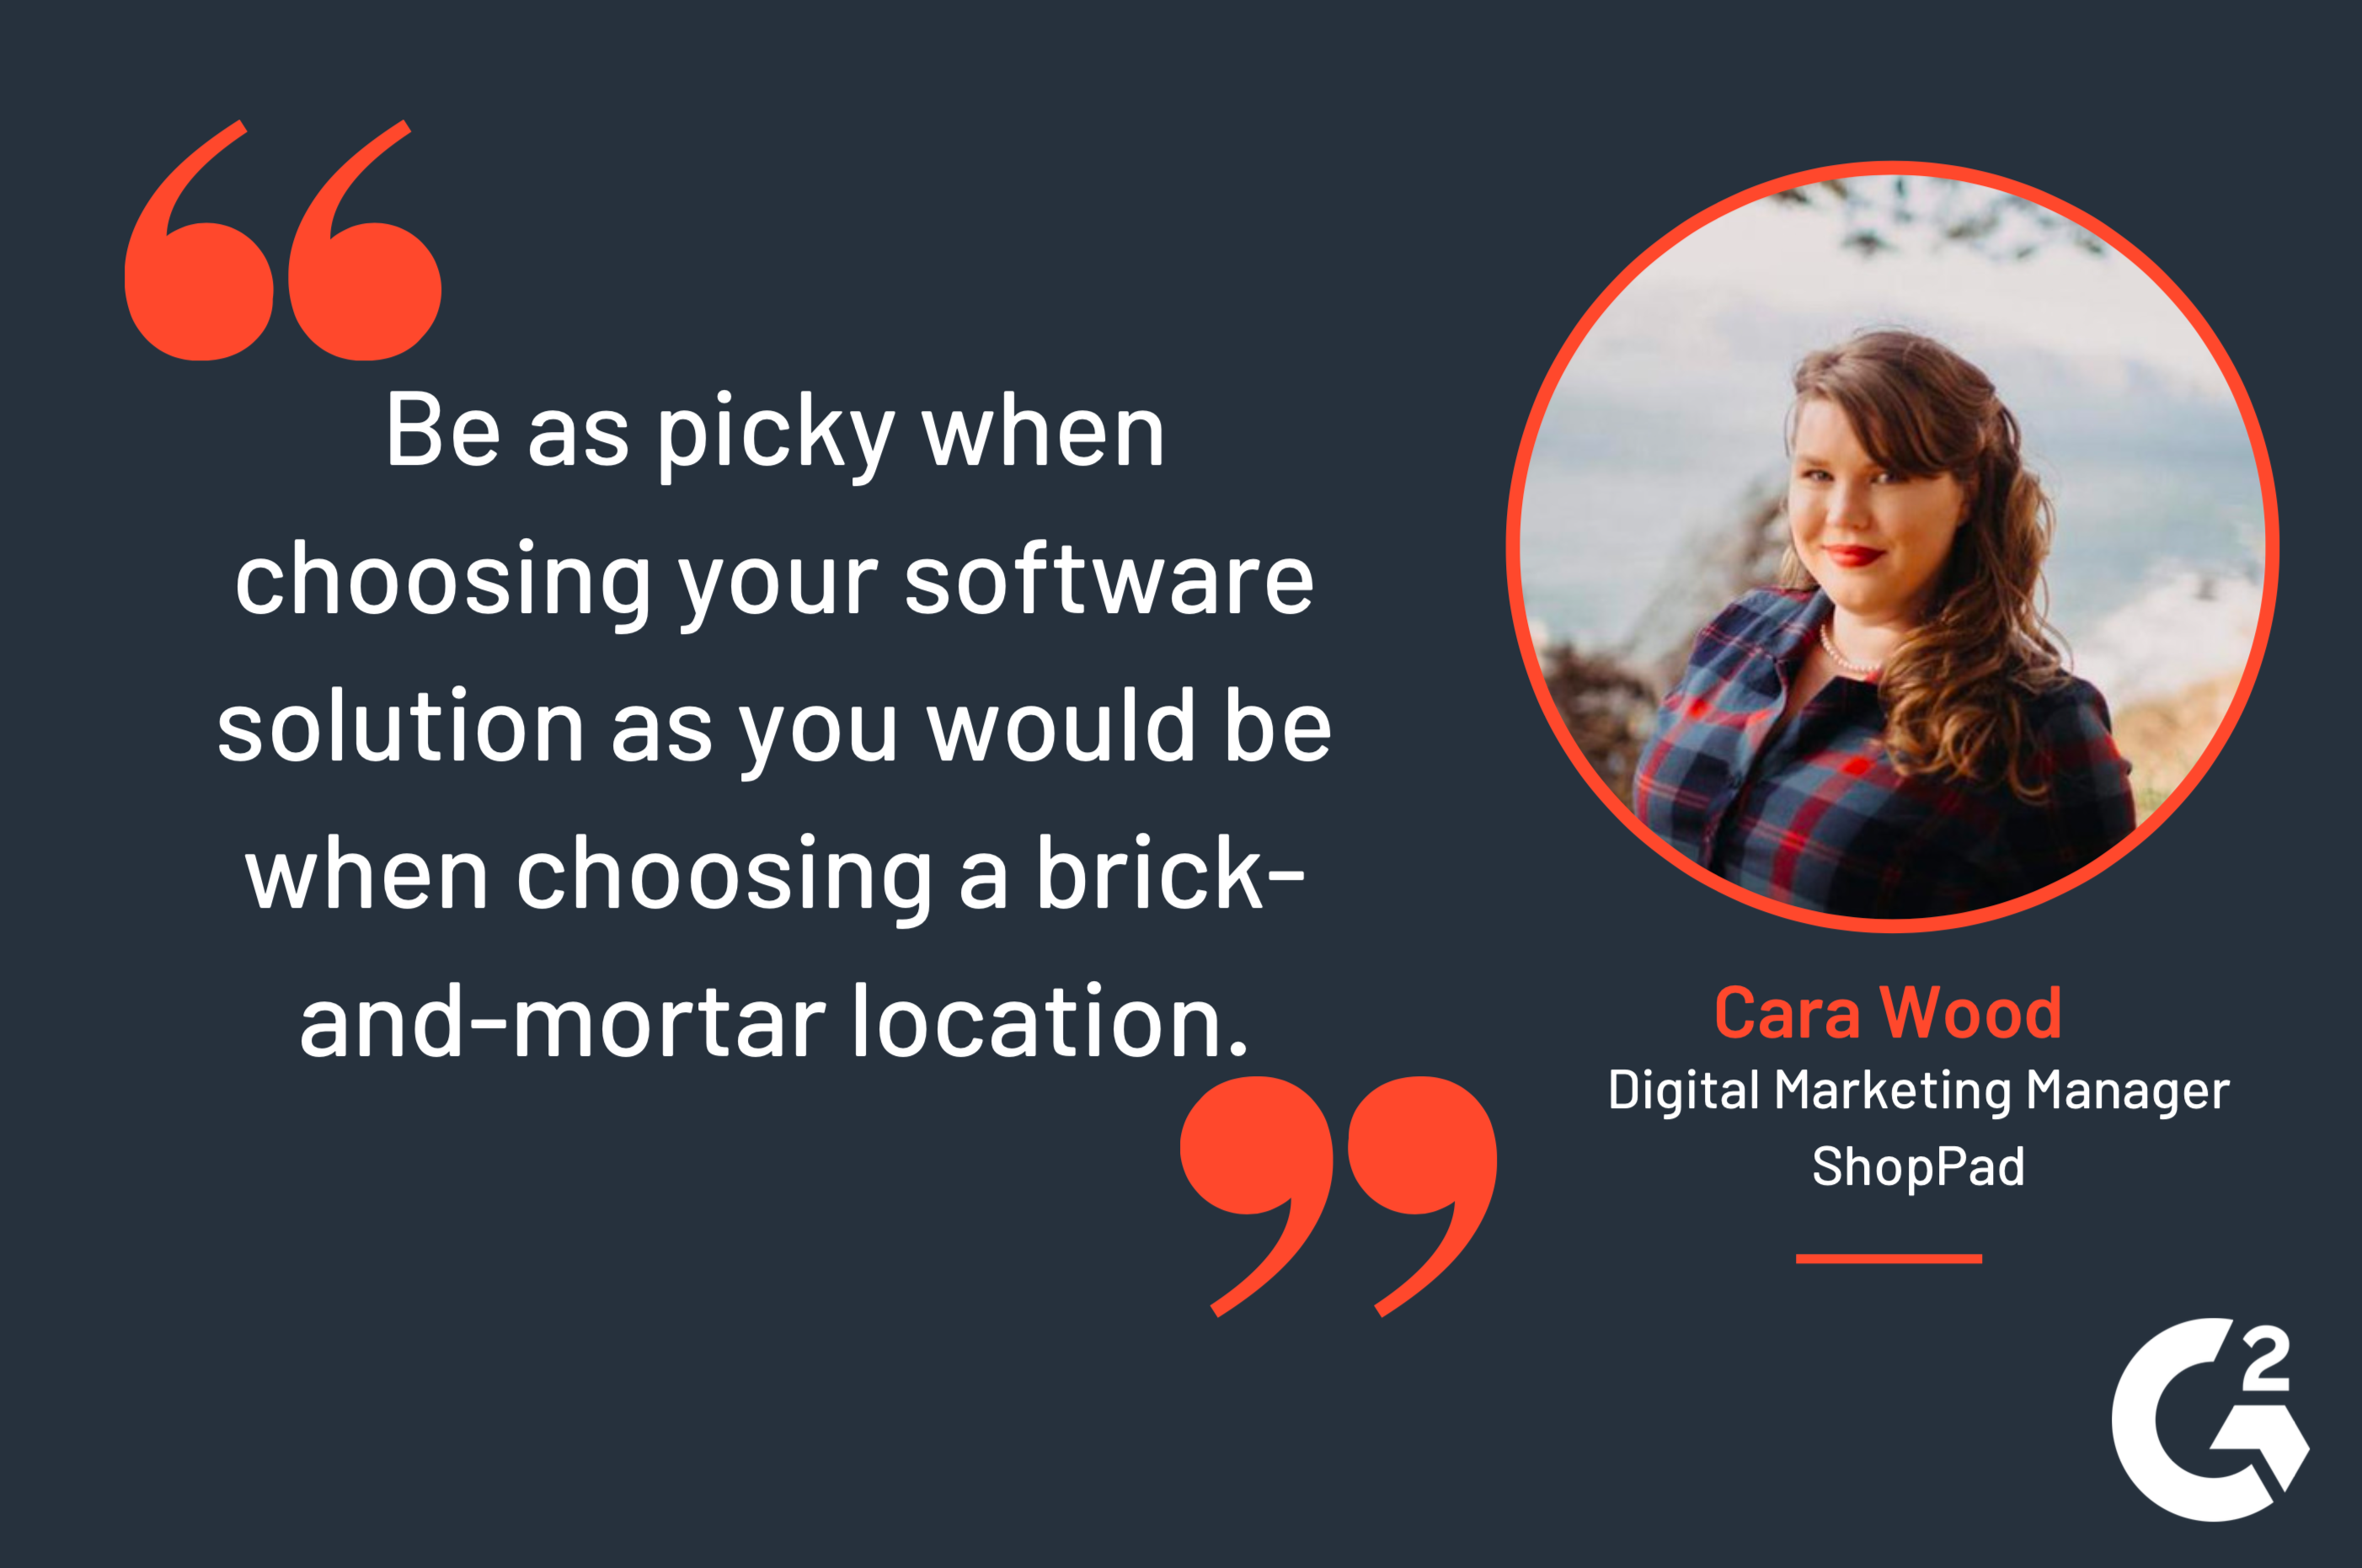 e-commerce business ideas from cara wood